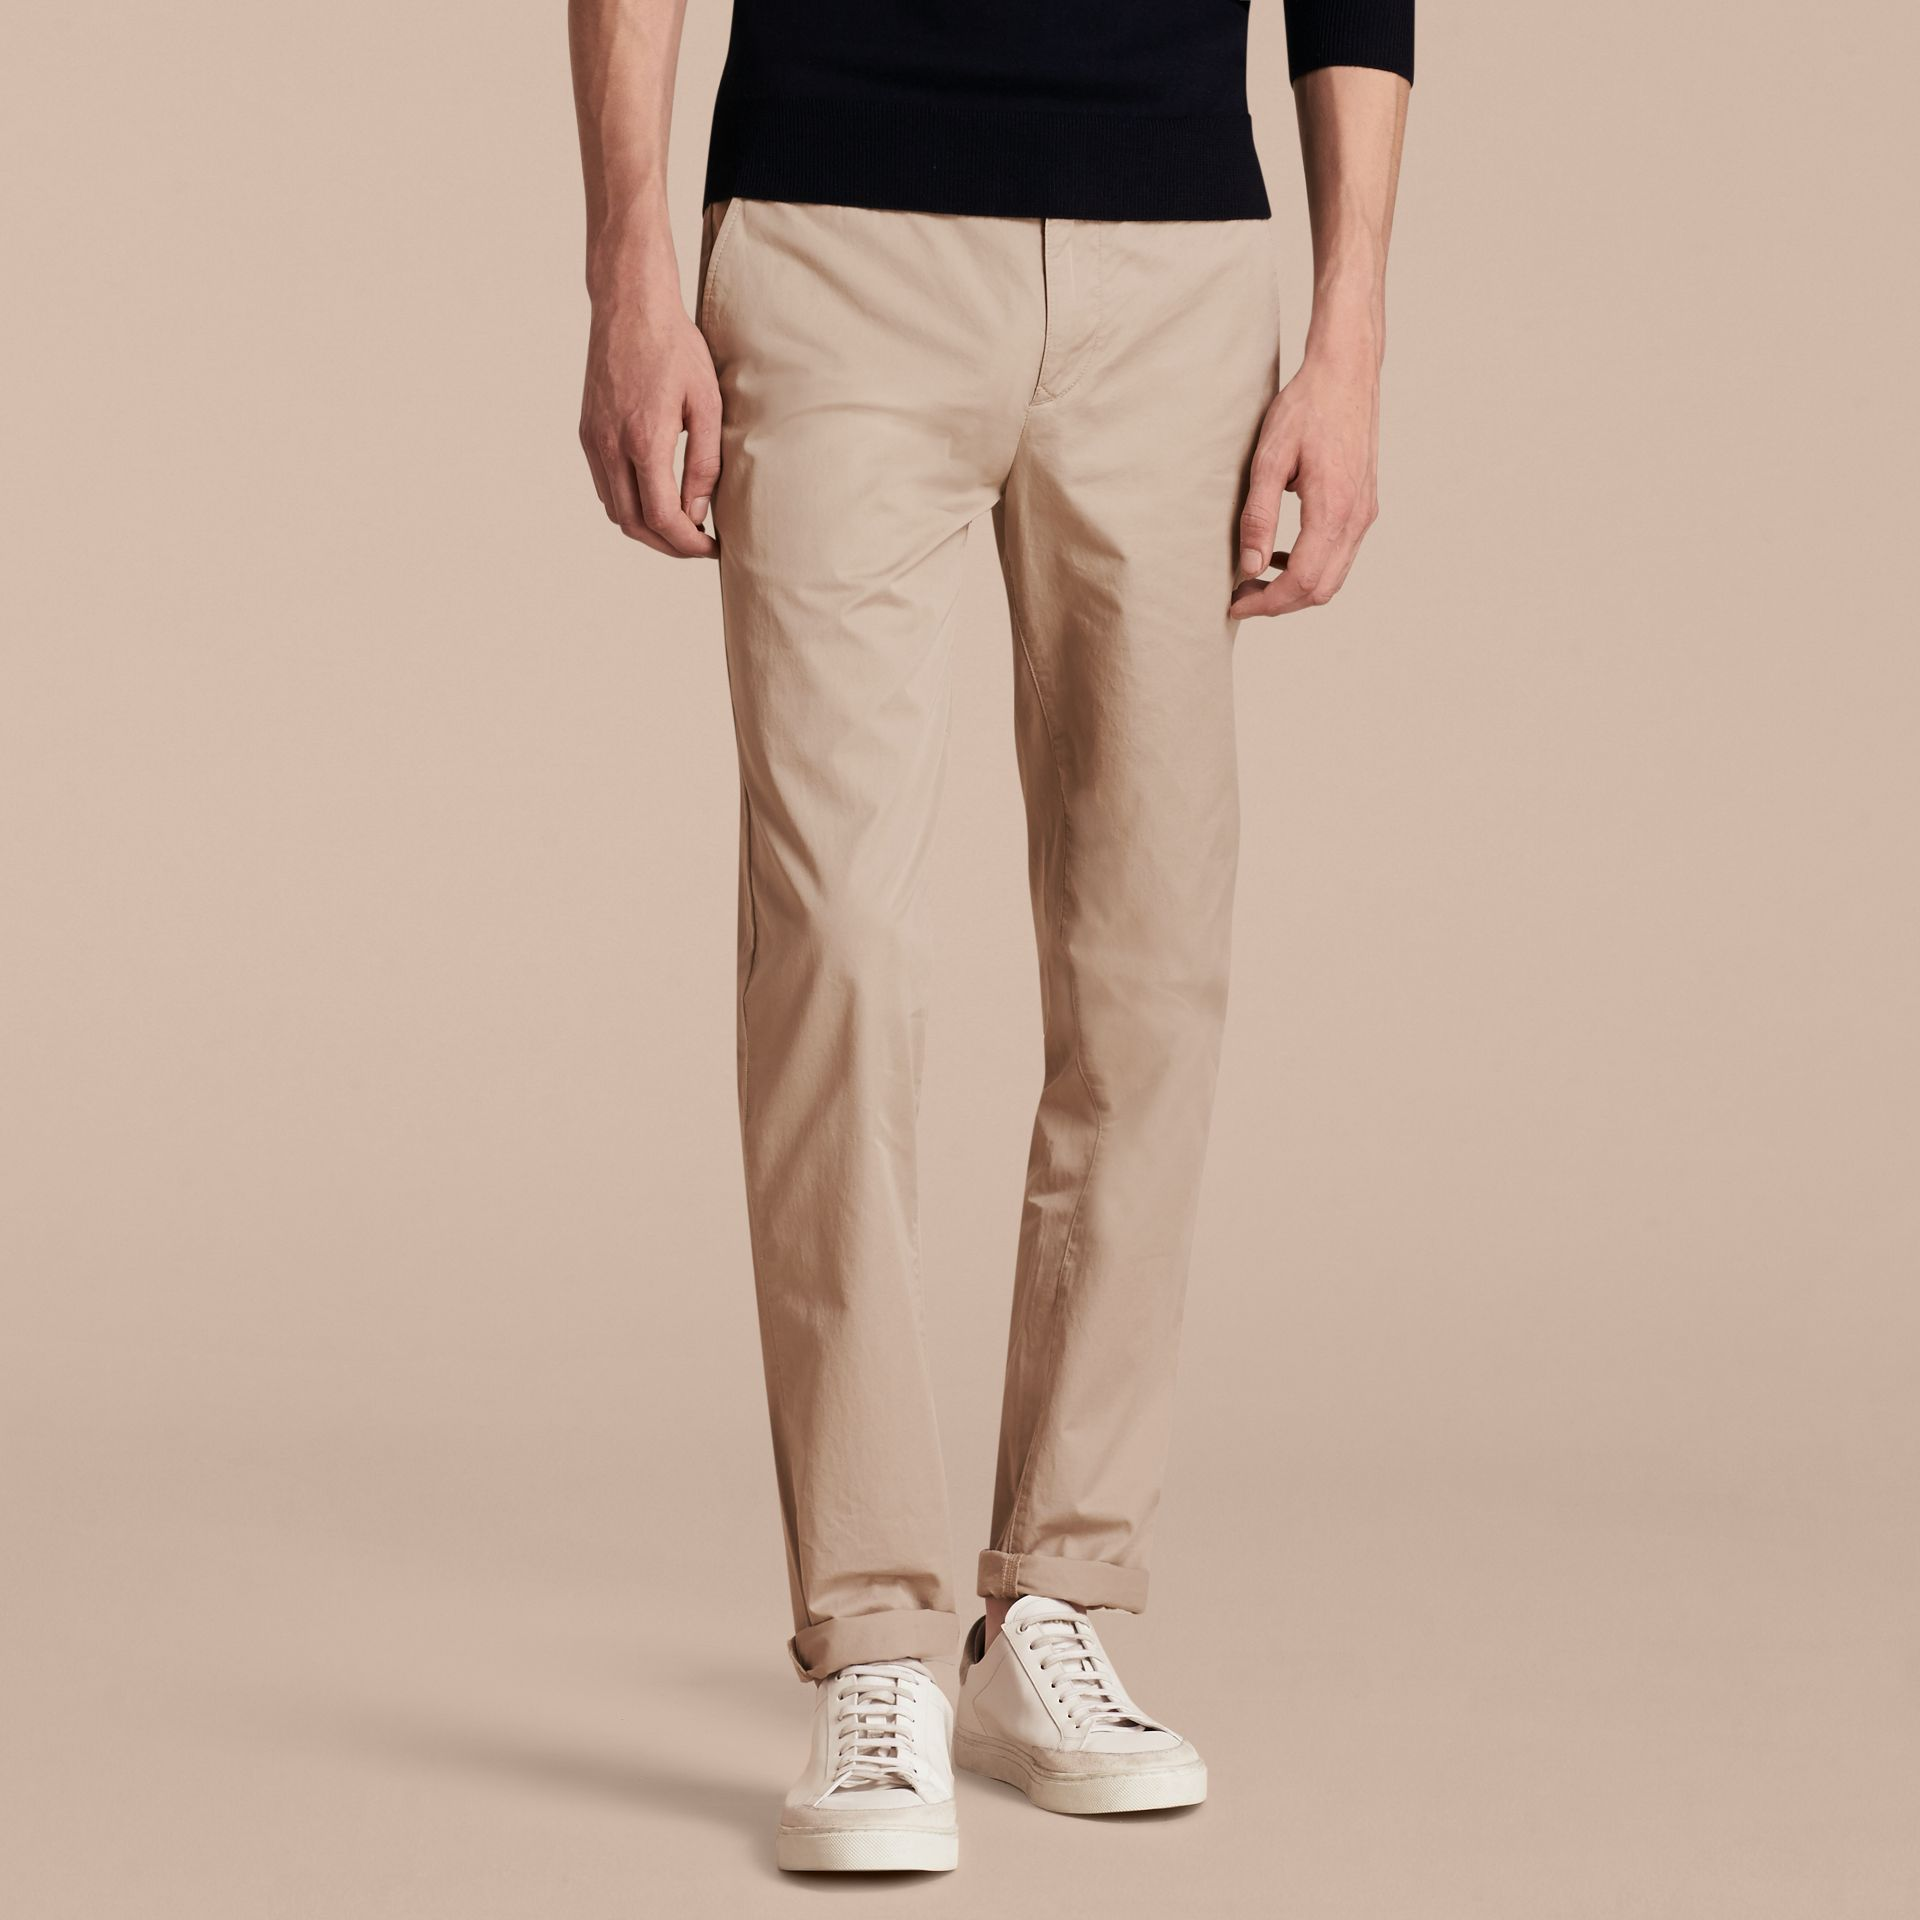 Slim Fit Cotton Chinos in Taupe - Men | Burberry - gallery image 7